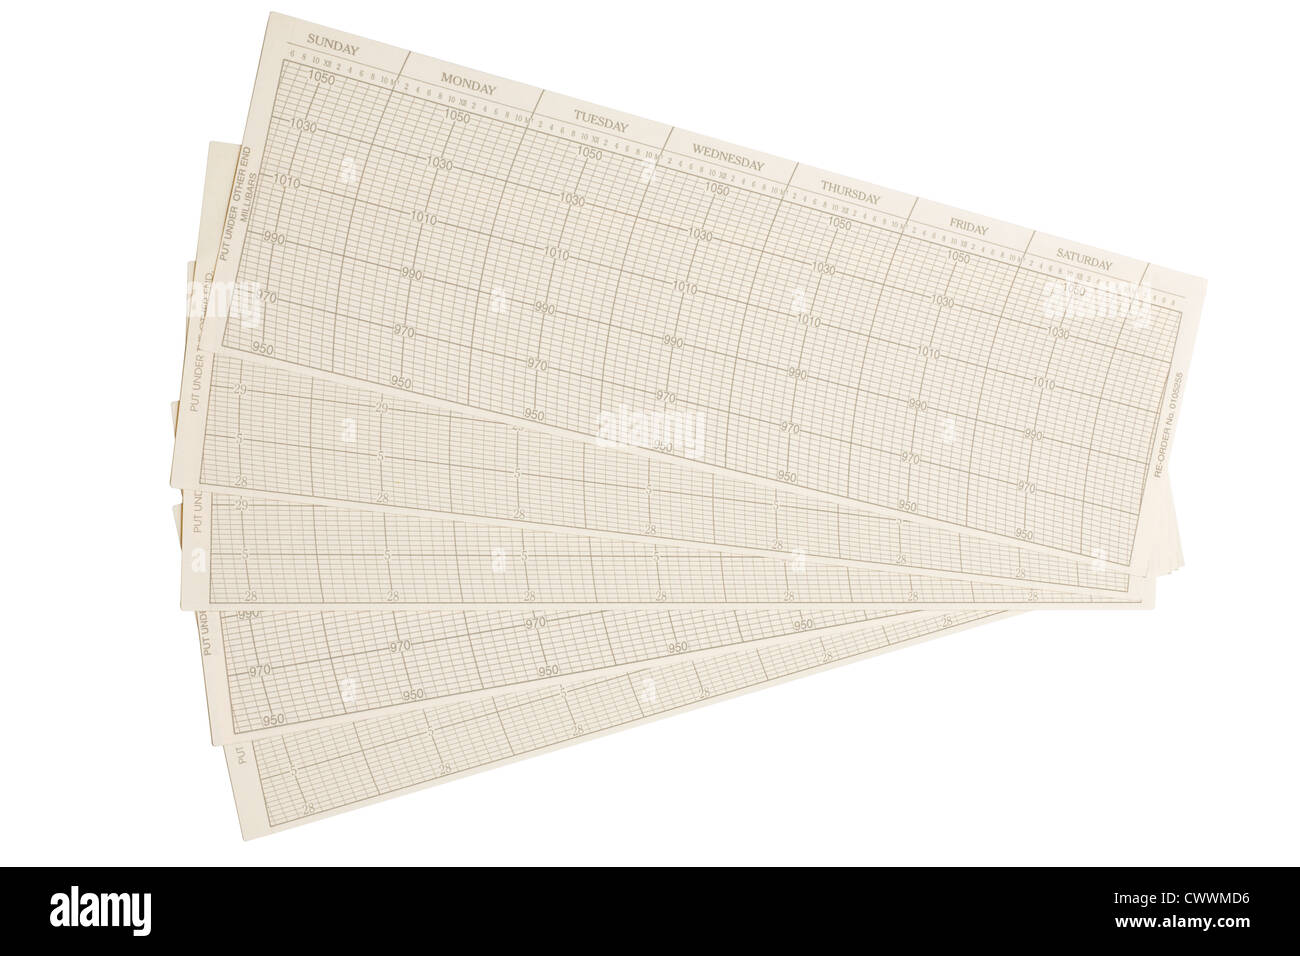 Barograph chart samples in inches - Stock Image